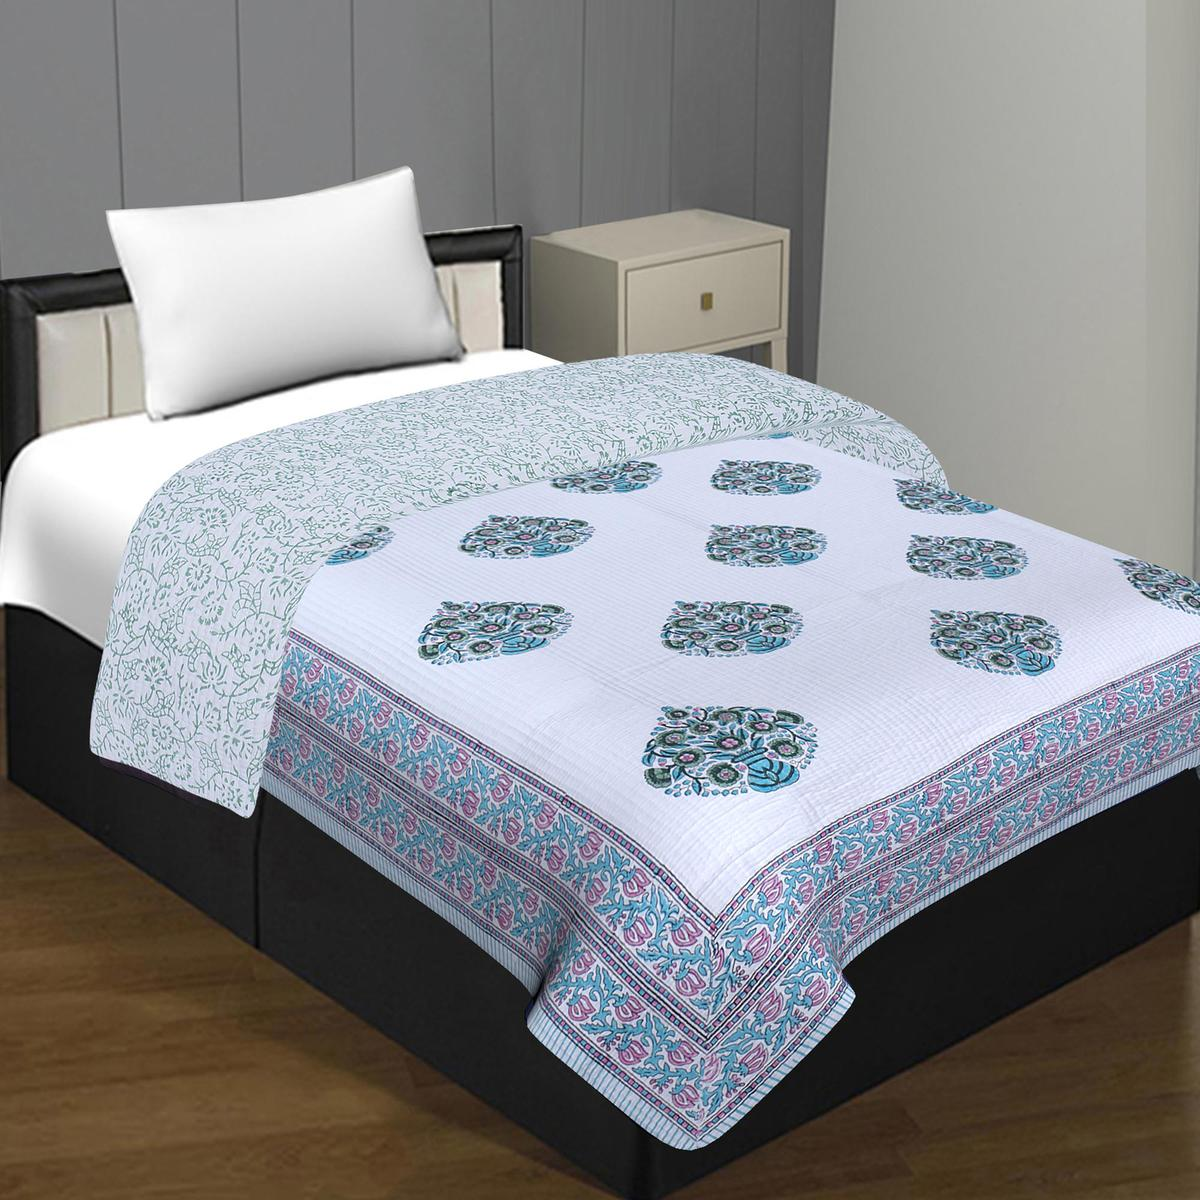 Stunning White Colored Printed Poly Cotton Single Bed Comforter